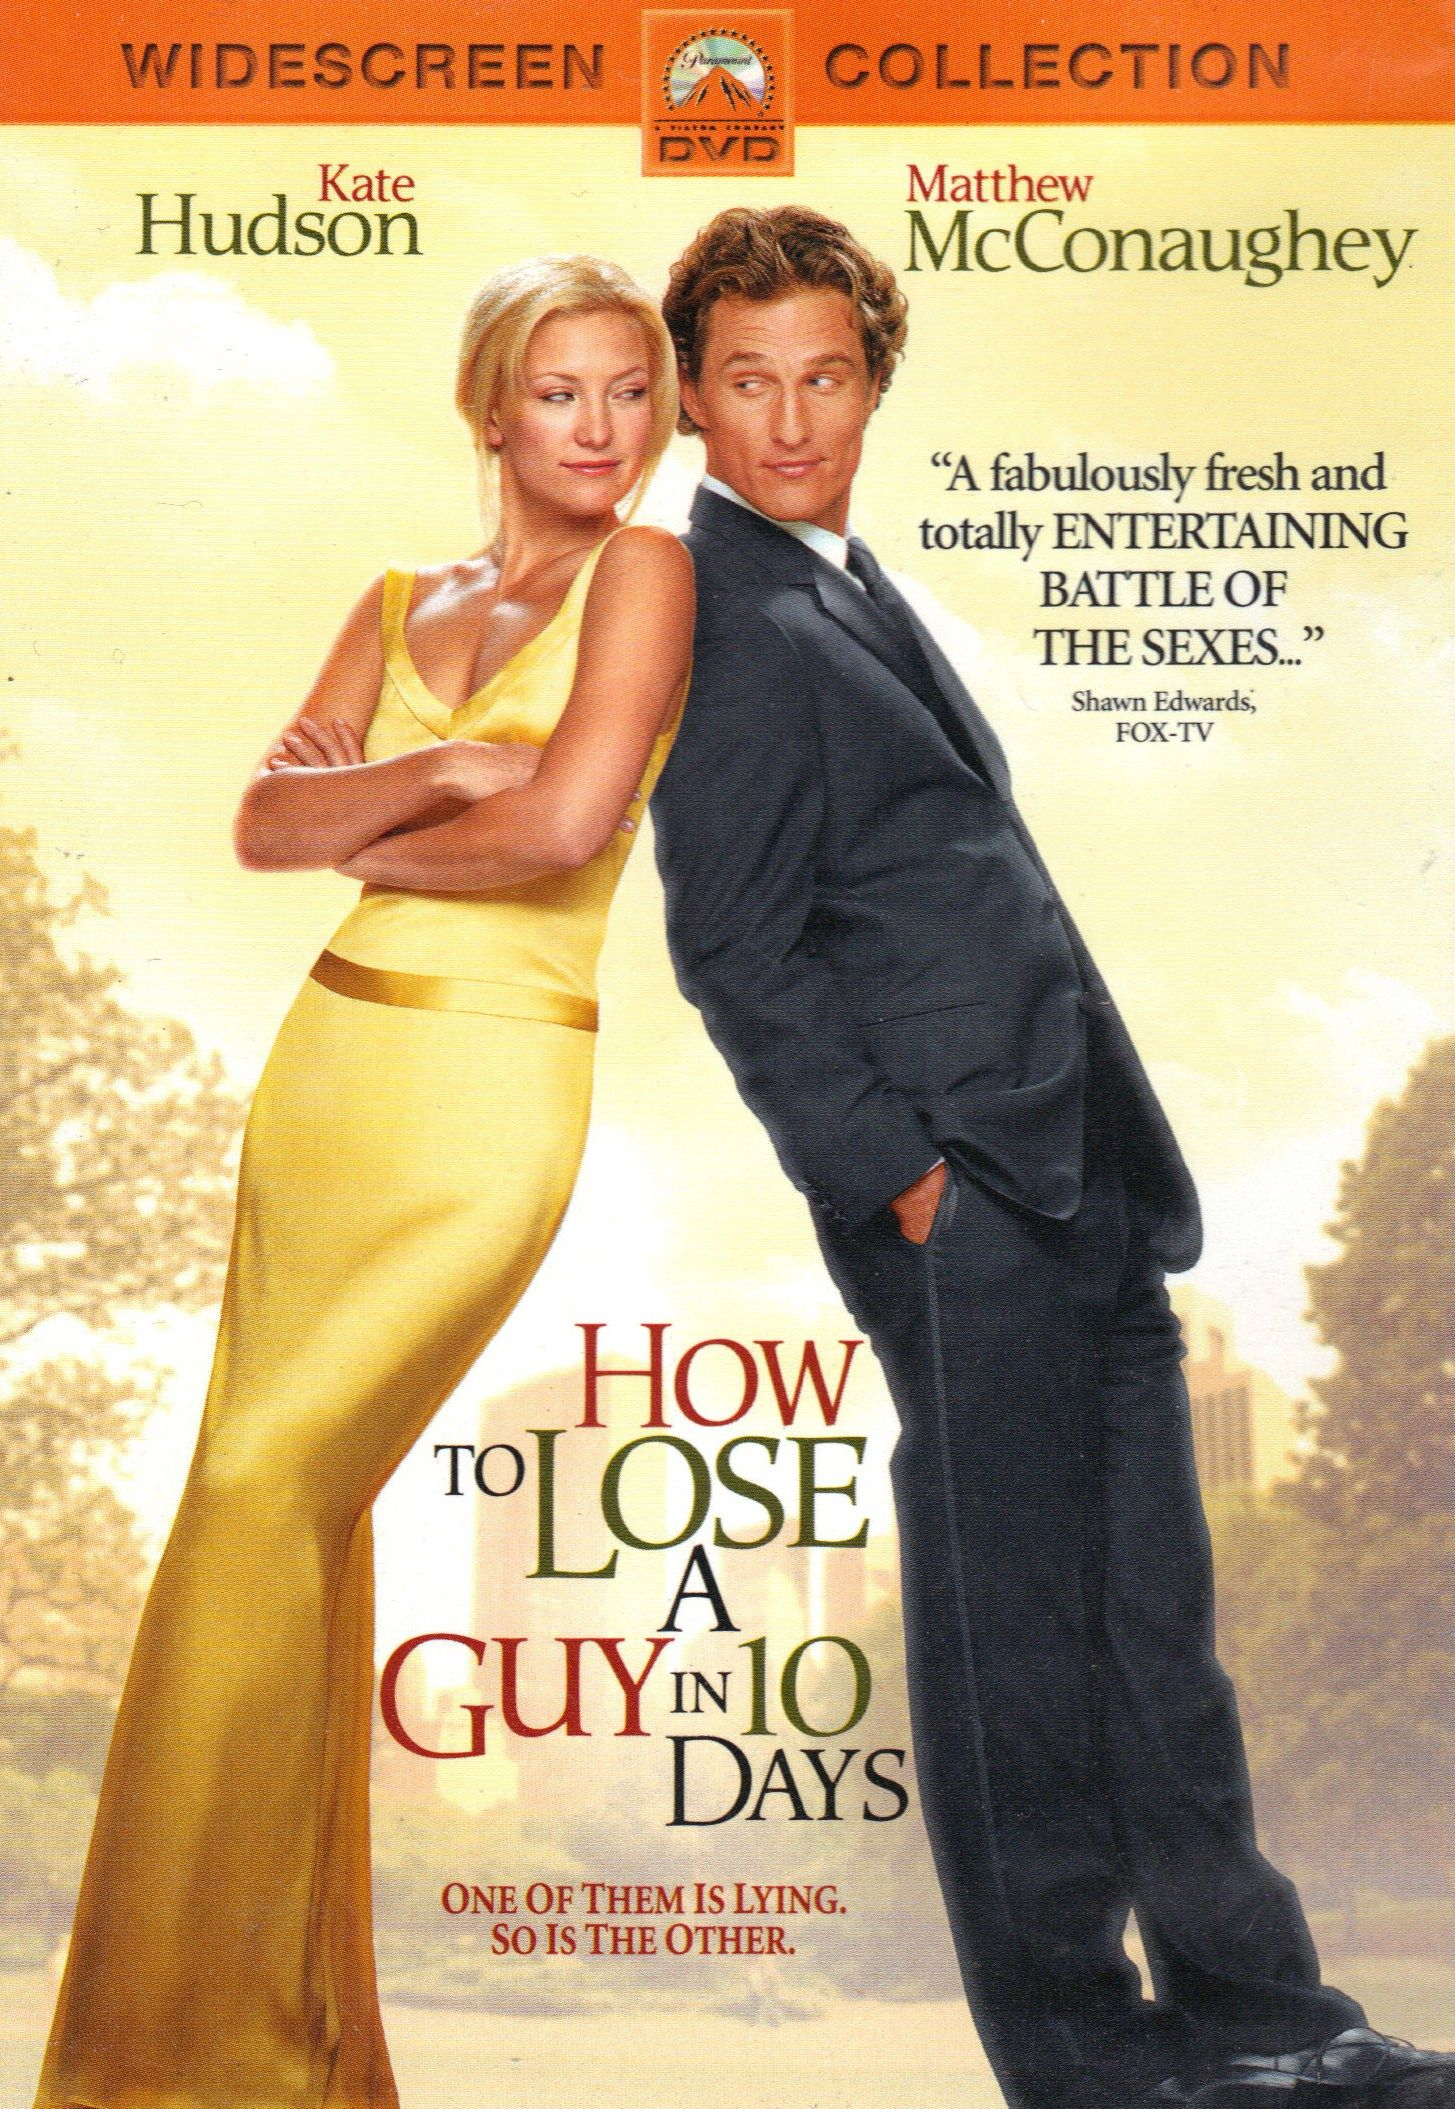 How to lose a guy in 10 days streaming movies free guys